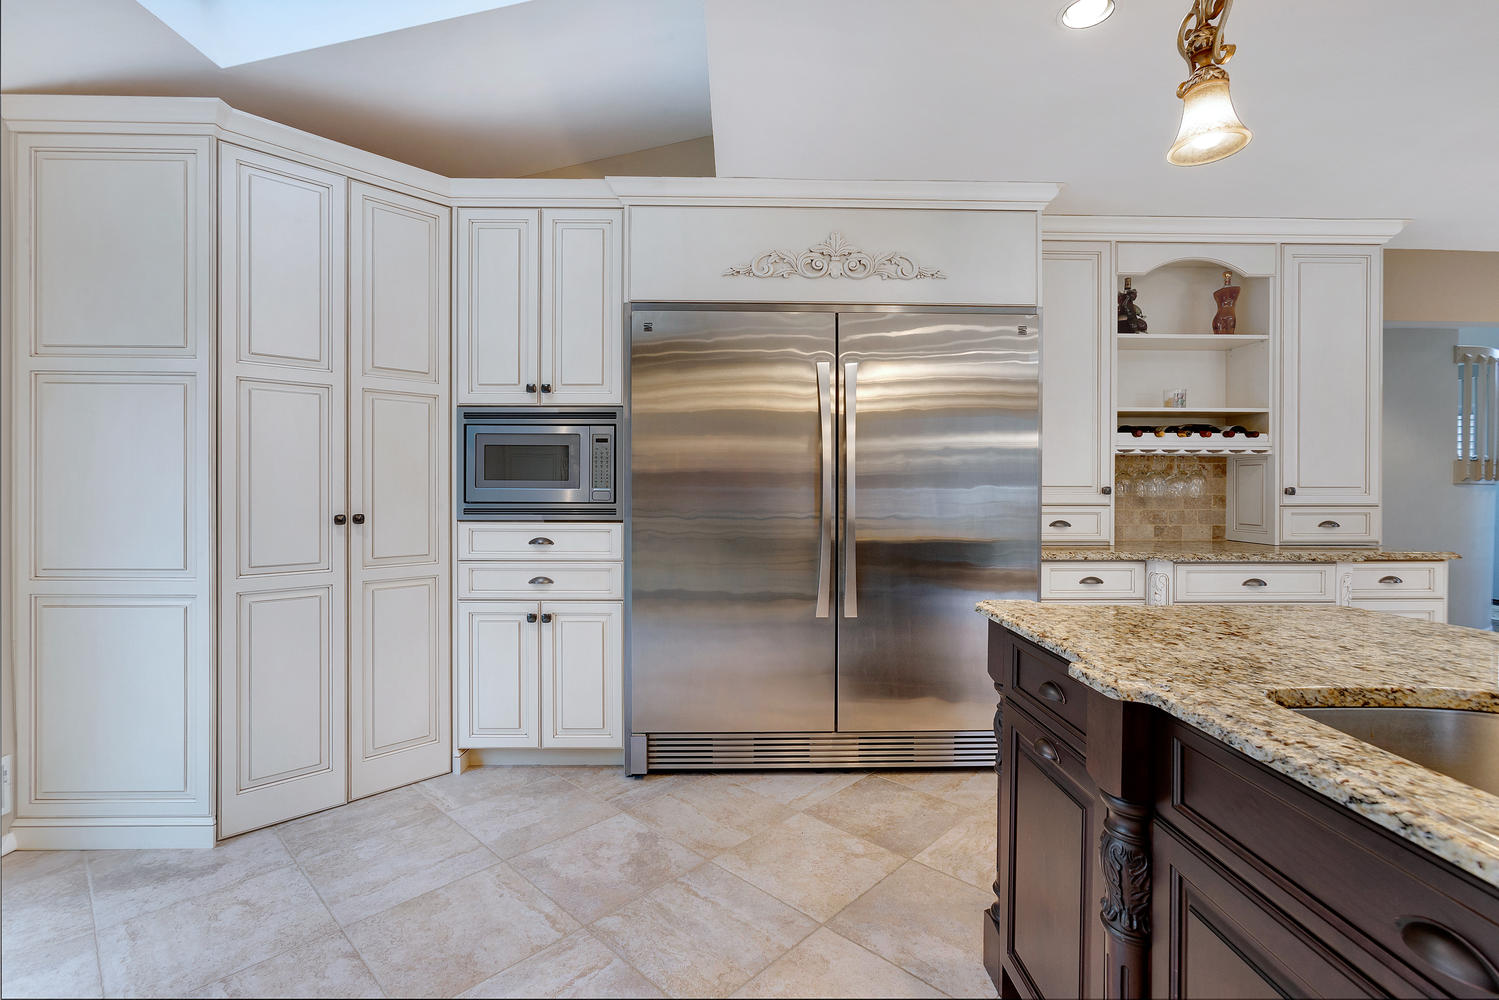 Traditional kitchen cabinets toms river new jersey by design line kitchens - Design line kitchens ...